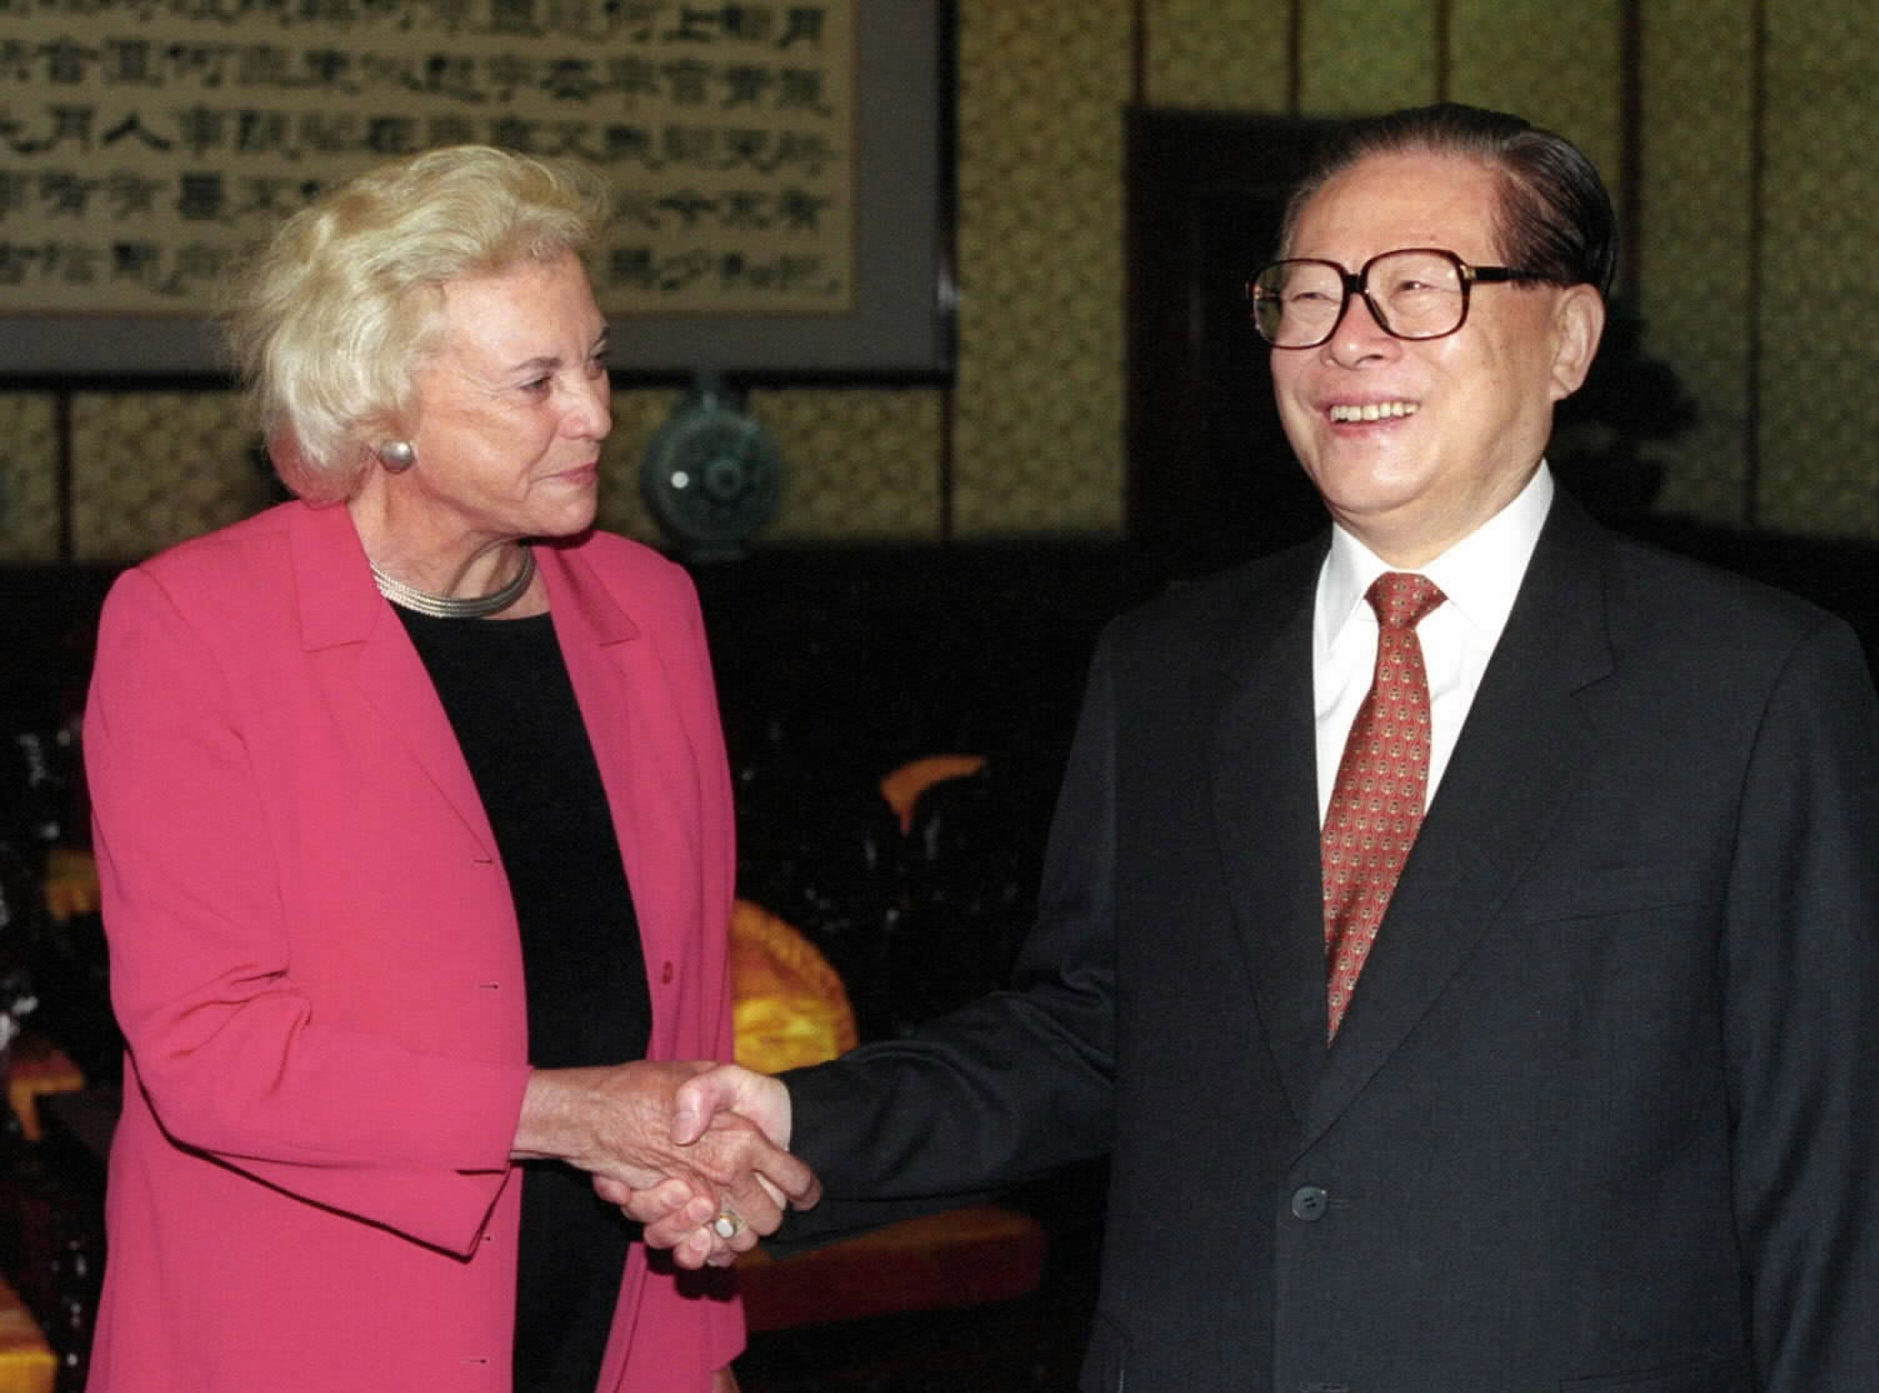 Chinese President Jiang Zemin shakes hands with U.S. Supreme Court Justice Sandra Day O'Connor in Beijing Thursday,  Sept.19, 2002.  O'Connor was in China at the invitation of China's Supreme People's Court.